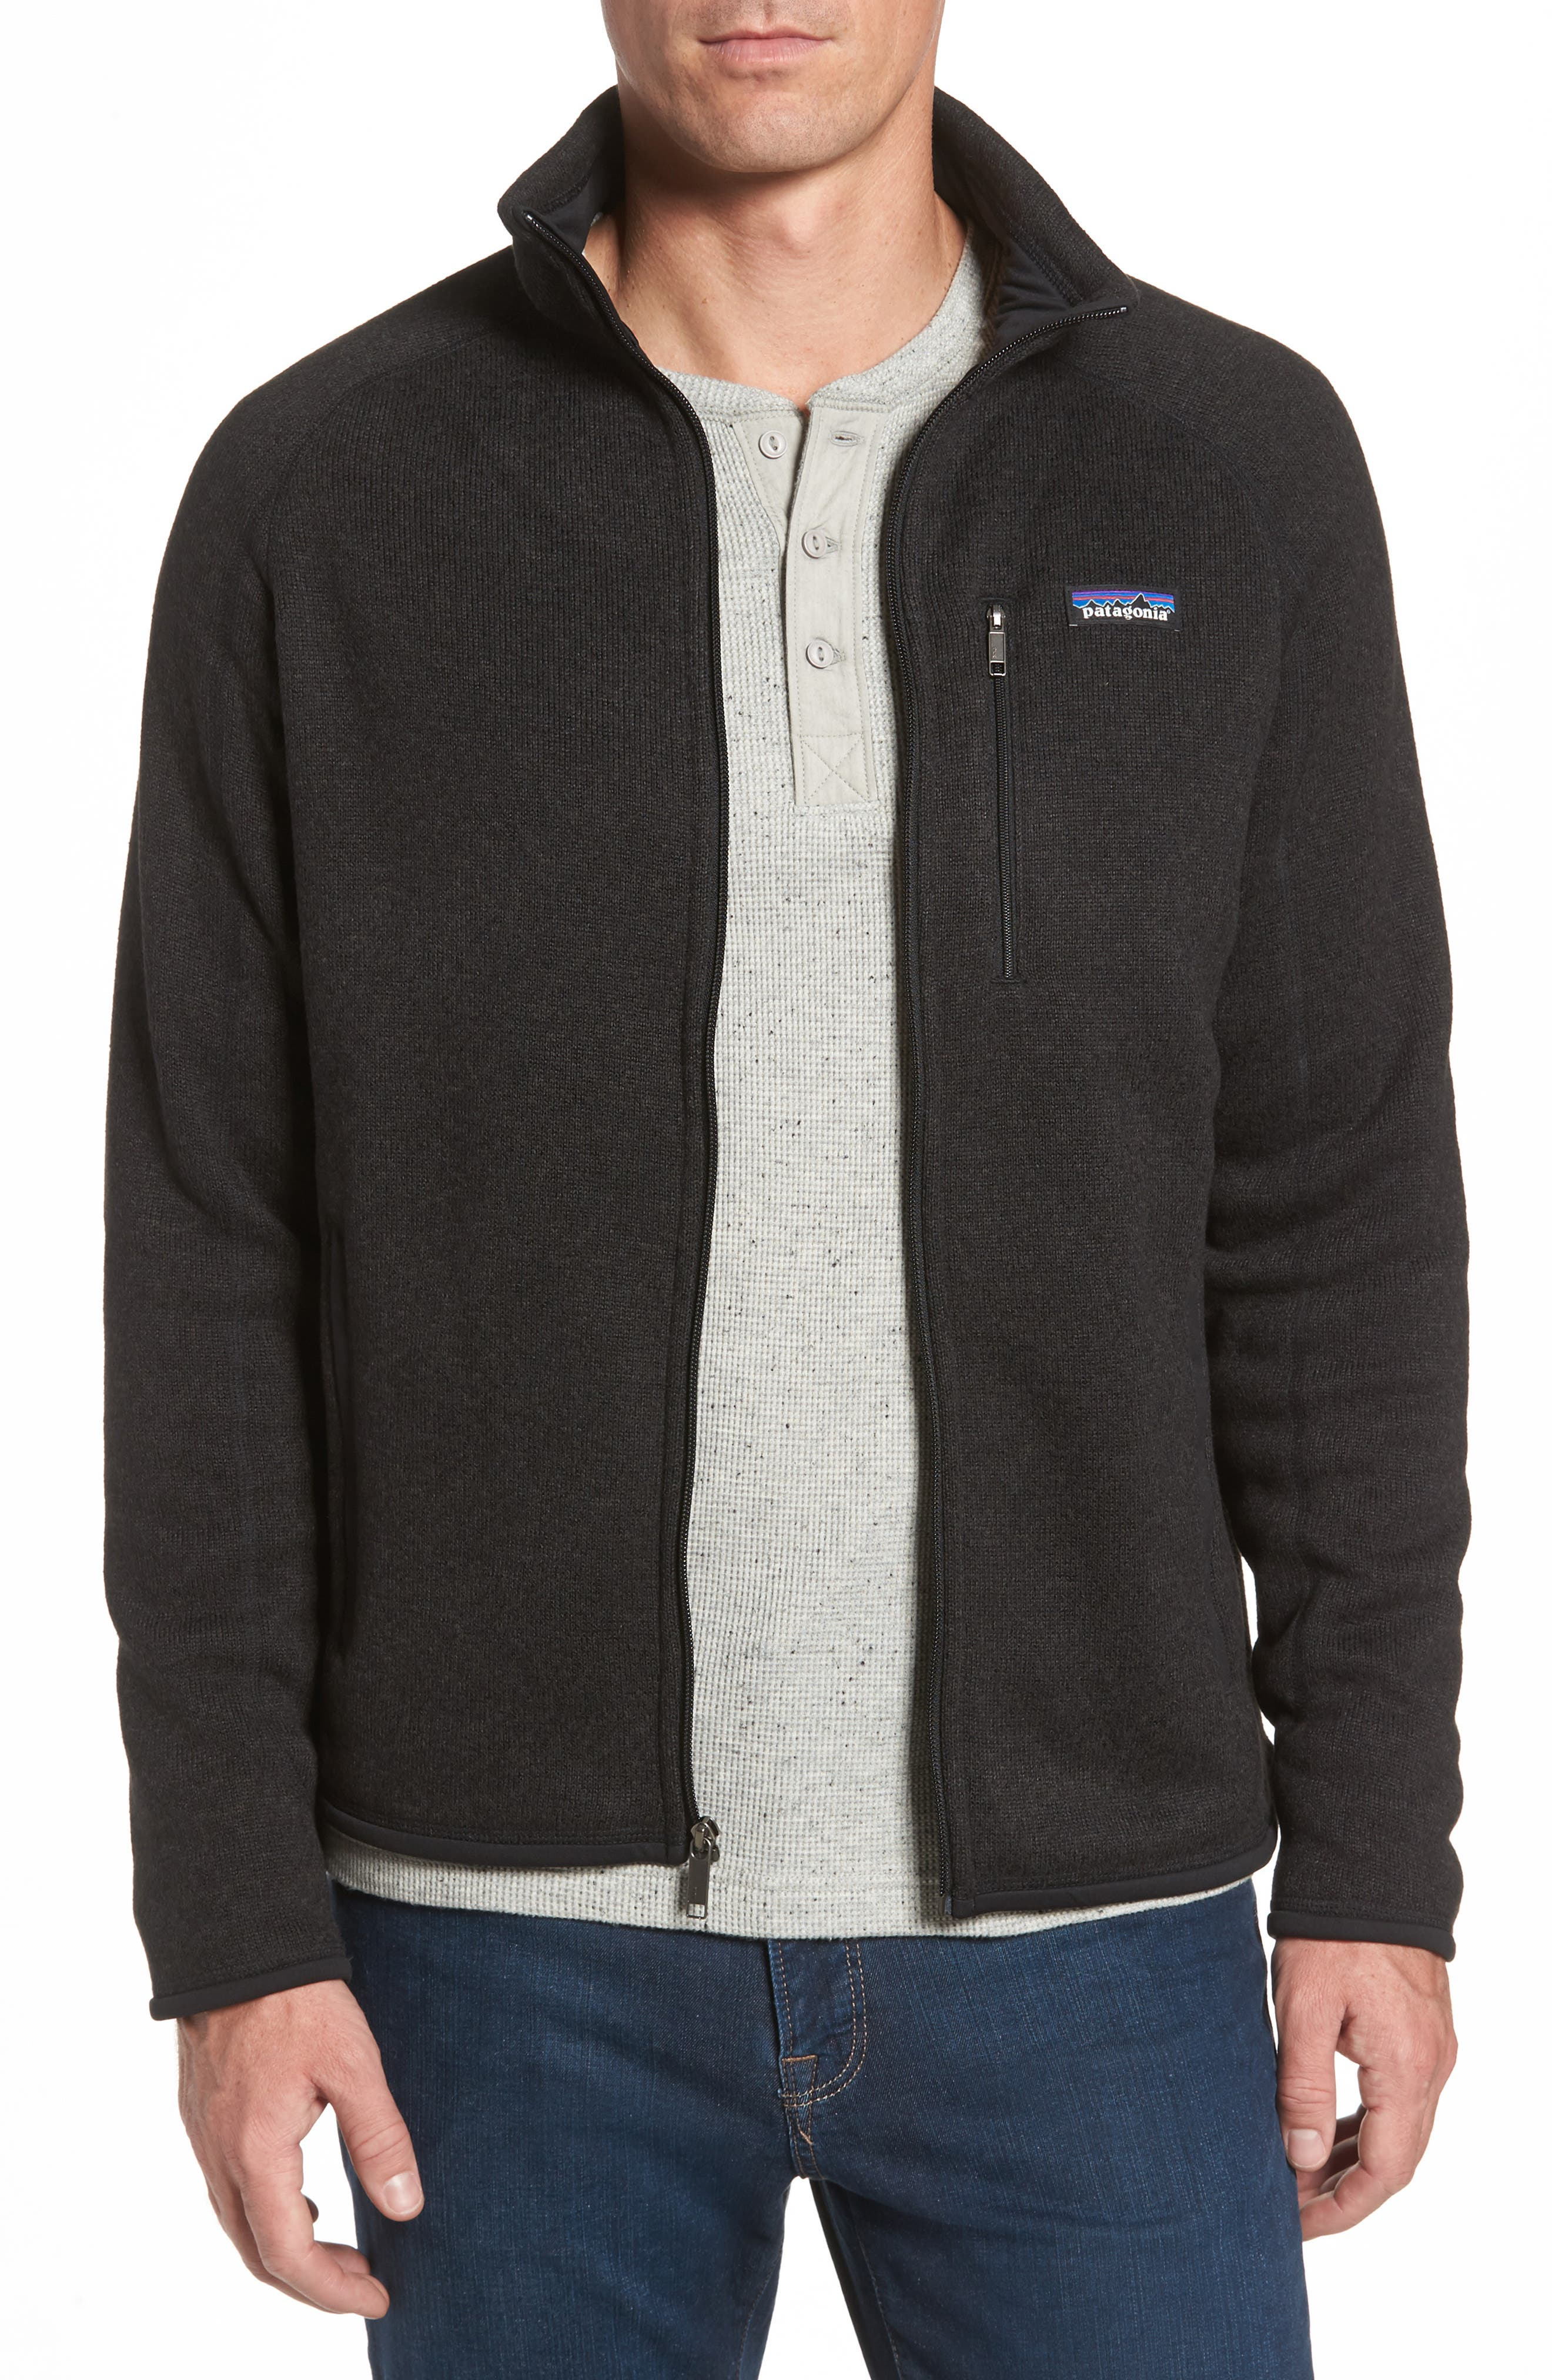 PATAGONIA, Better Sweater Zip Front Jacket, Main thumbnail 1, color, BLACK